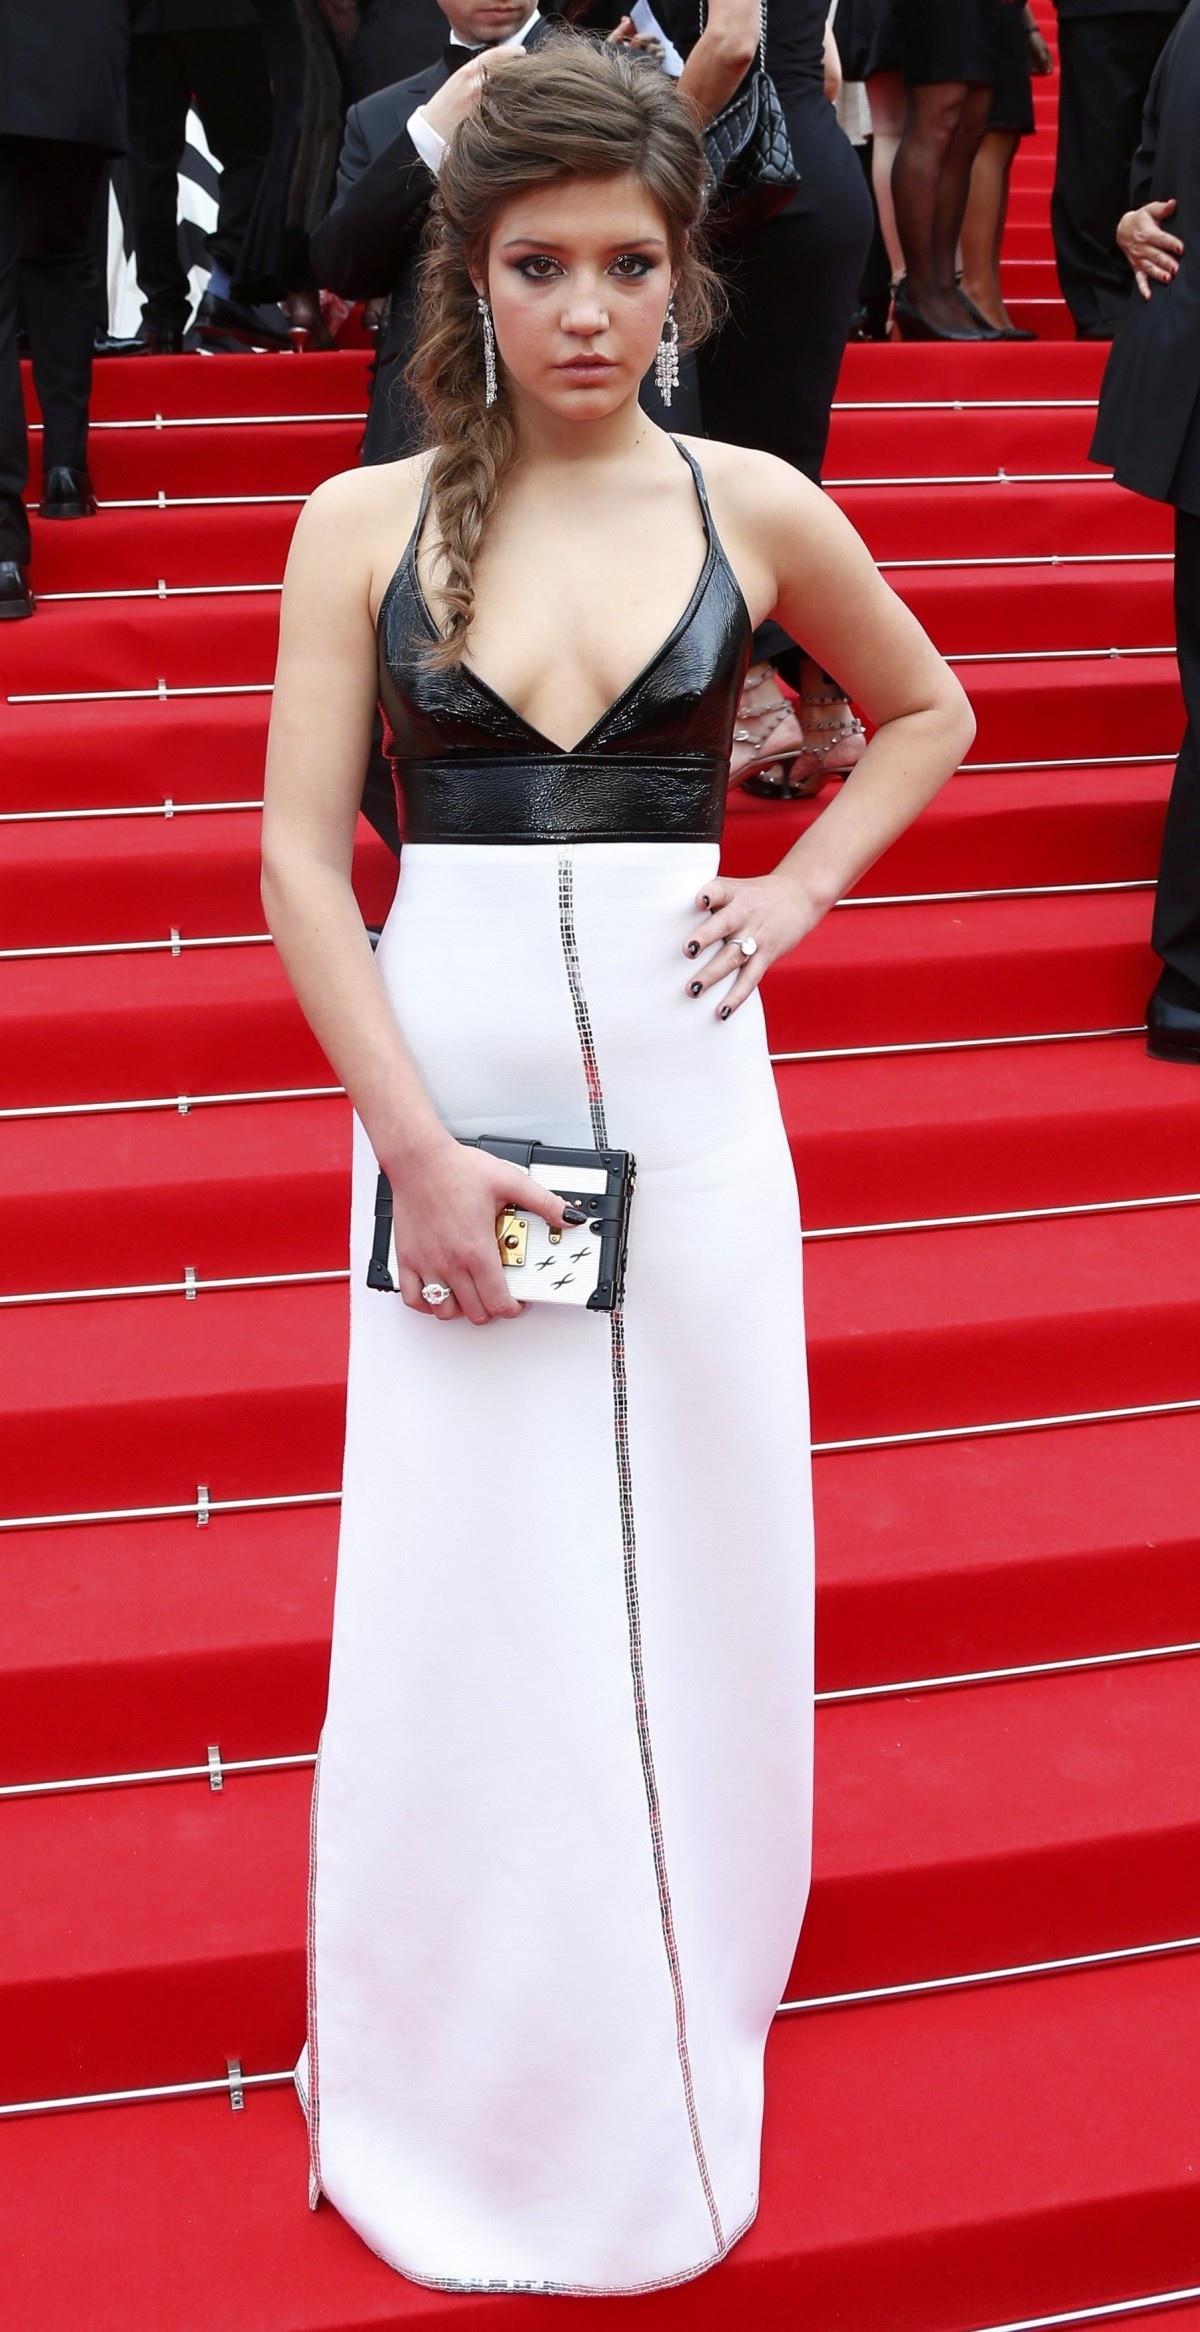 Actress Adele Exarchopoulos poses on the red carpet as she arrives for the opening ceremony of the 67th Cannes Film Festival in Cannes